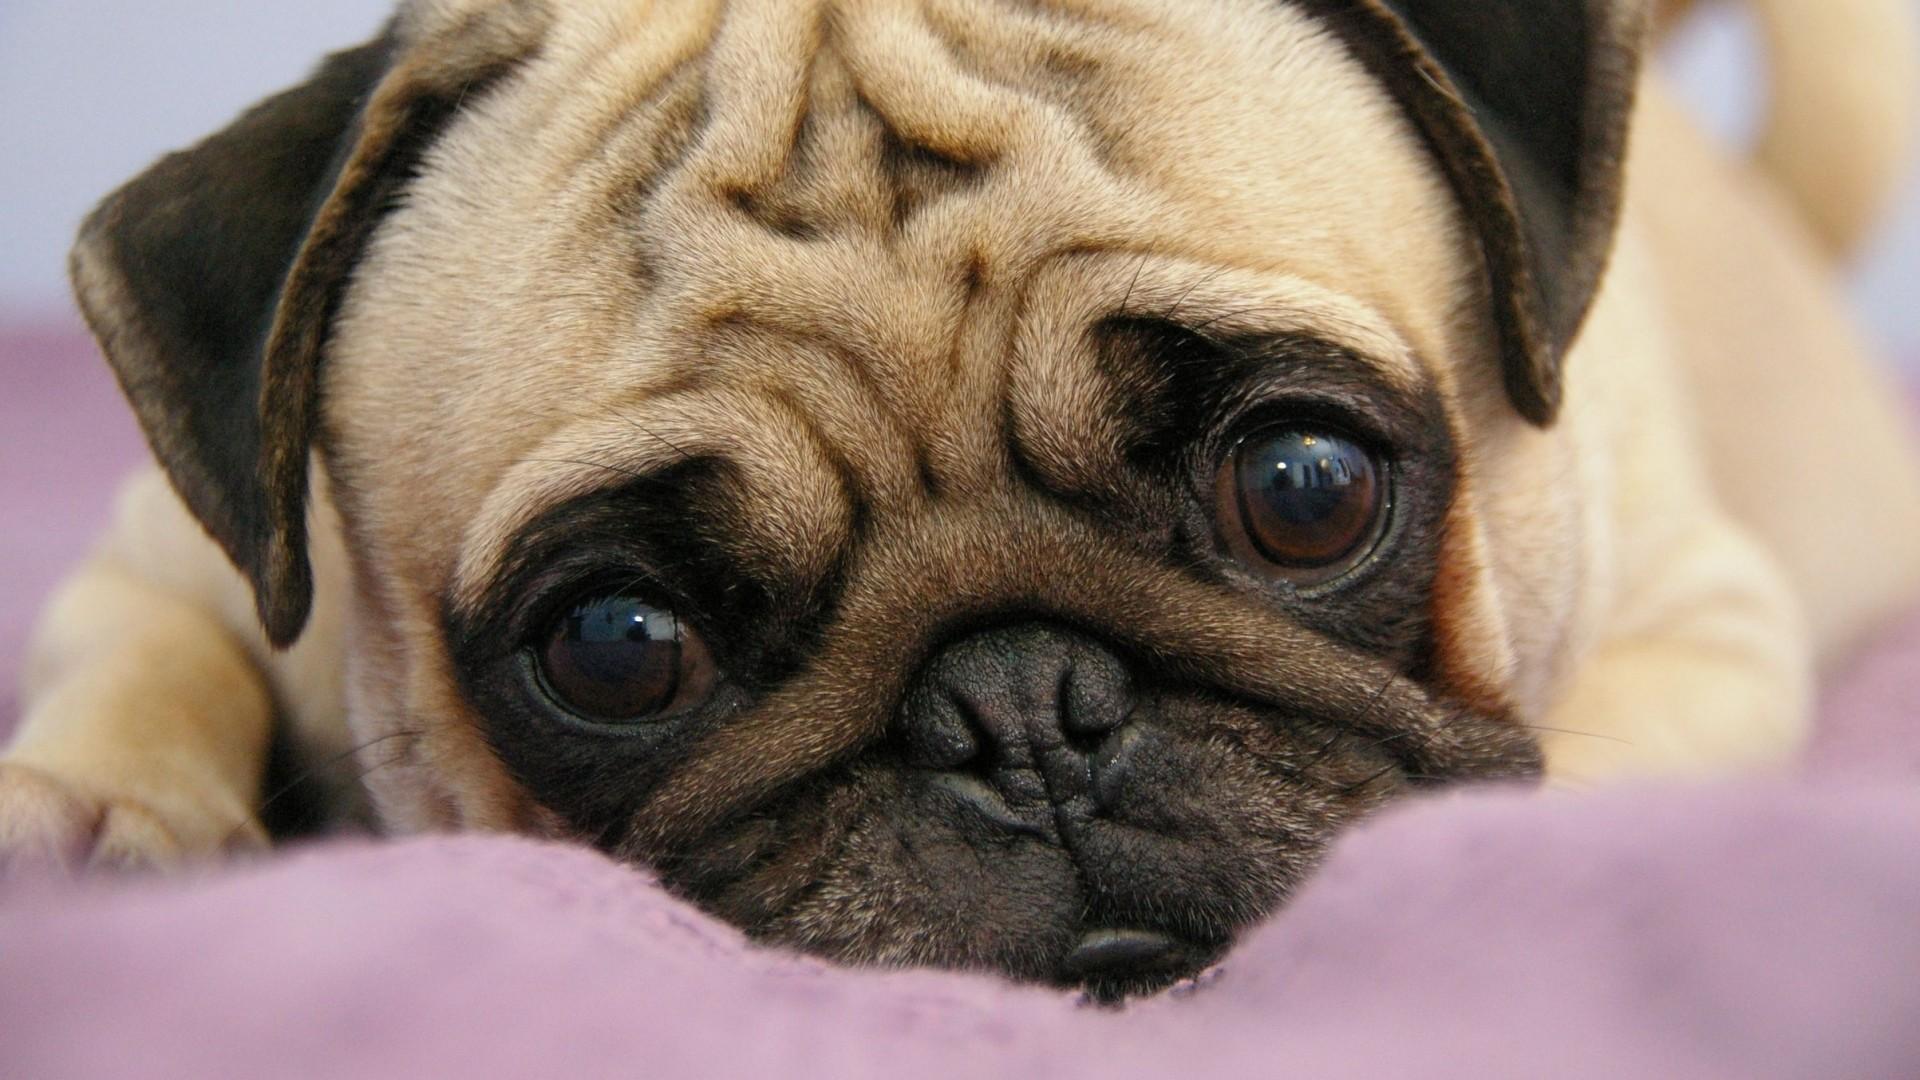 Brown And Black Pugs Wallpapers Posted By Sarah Tremblay